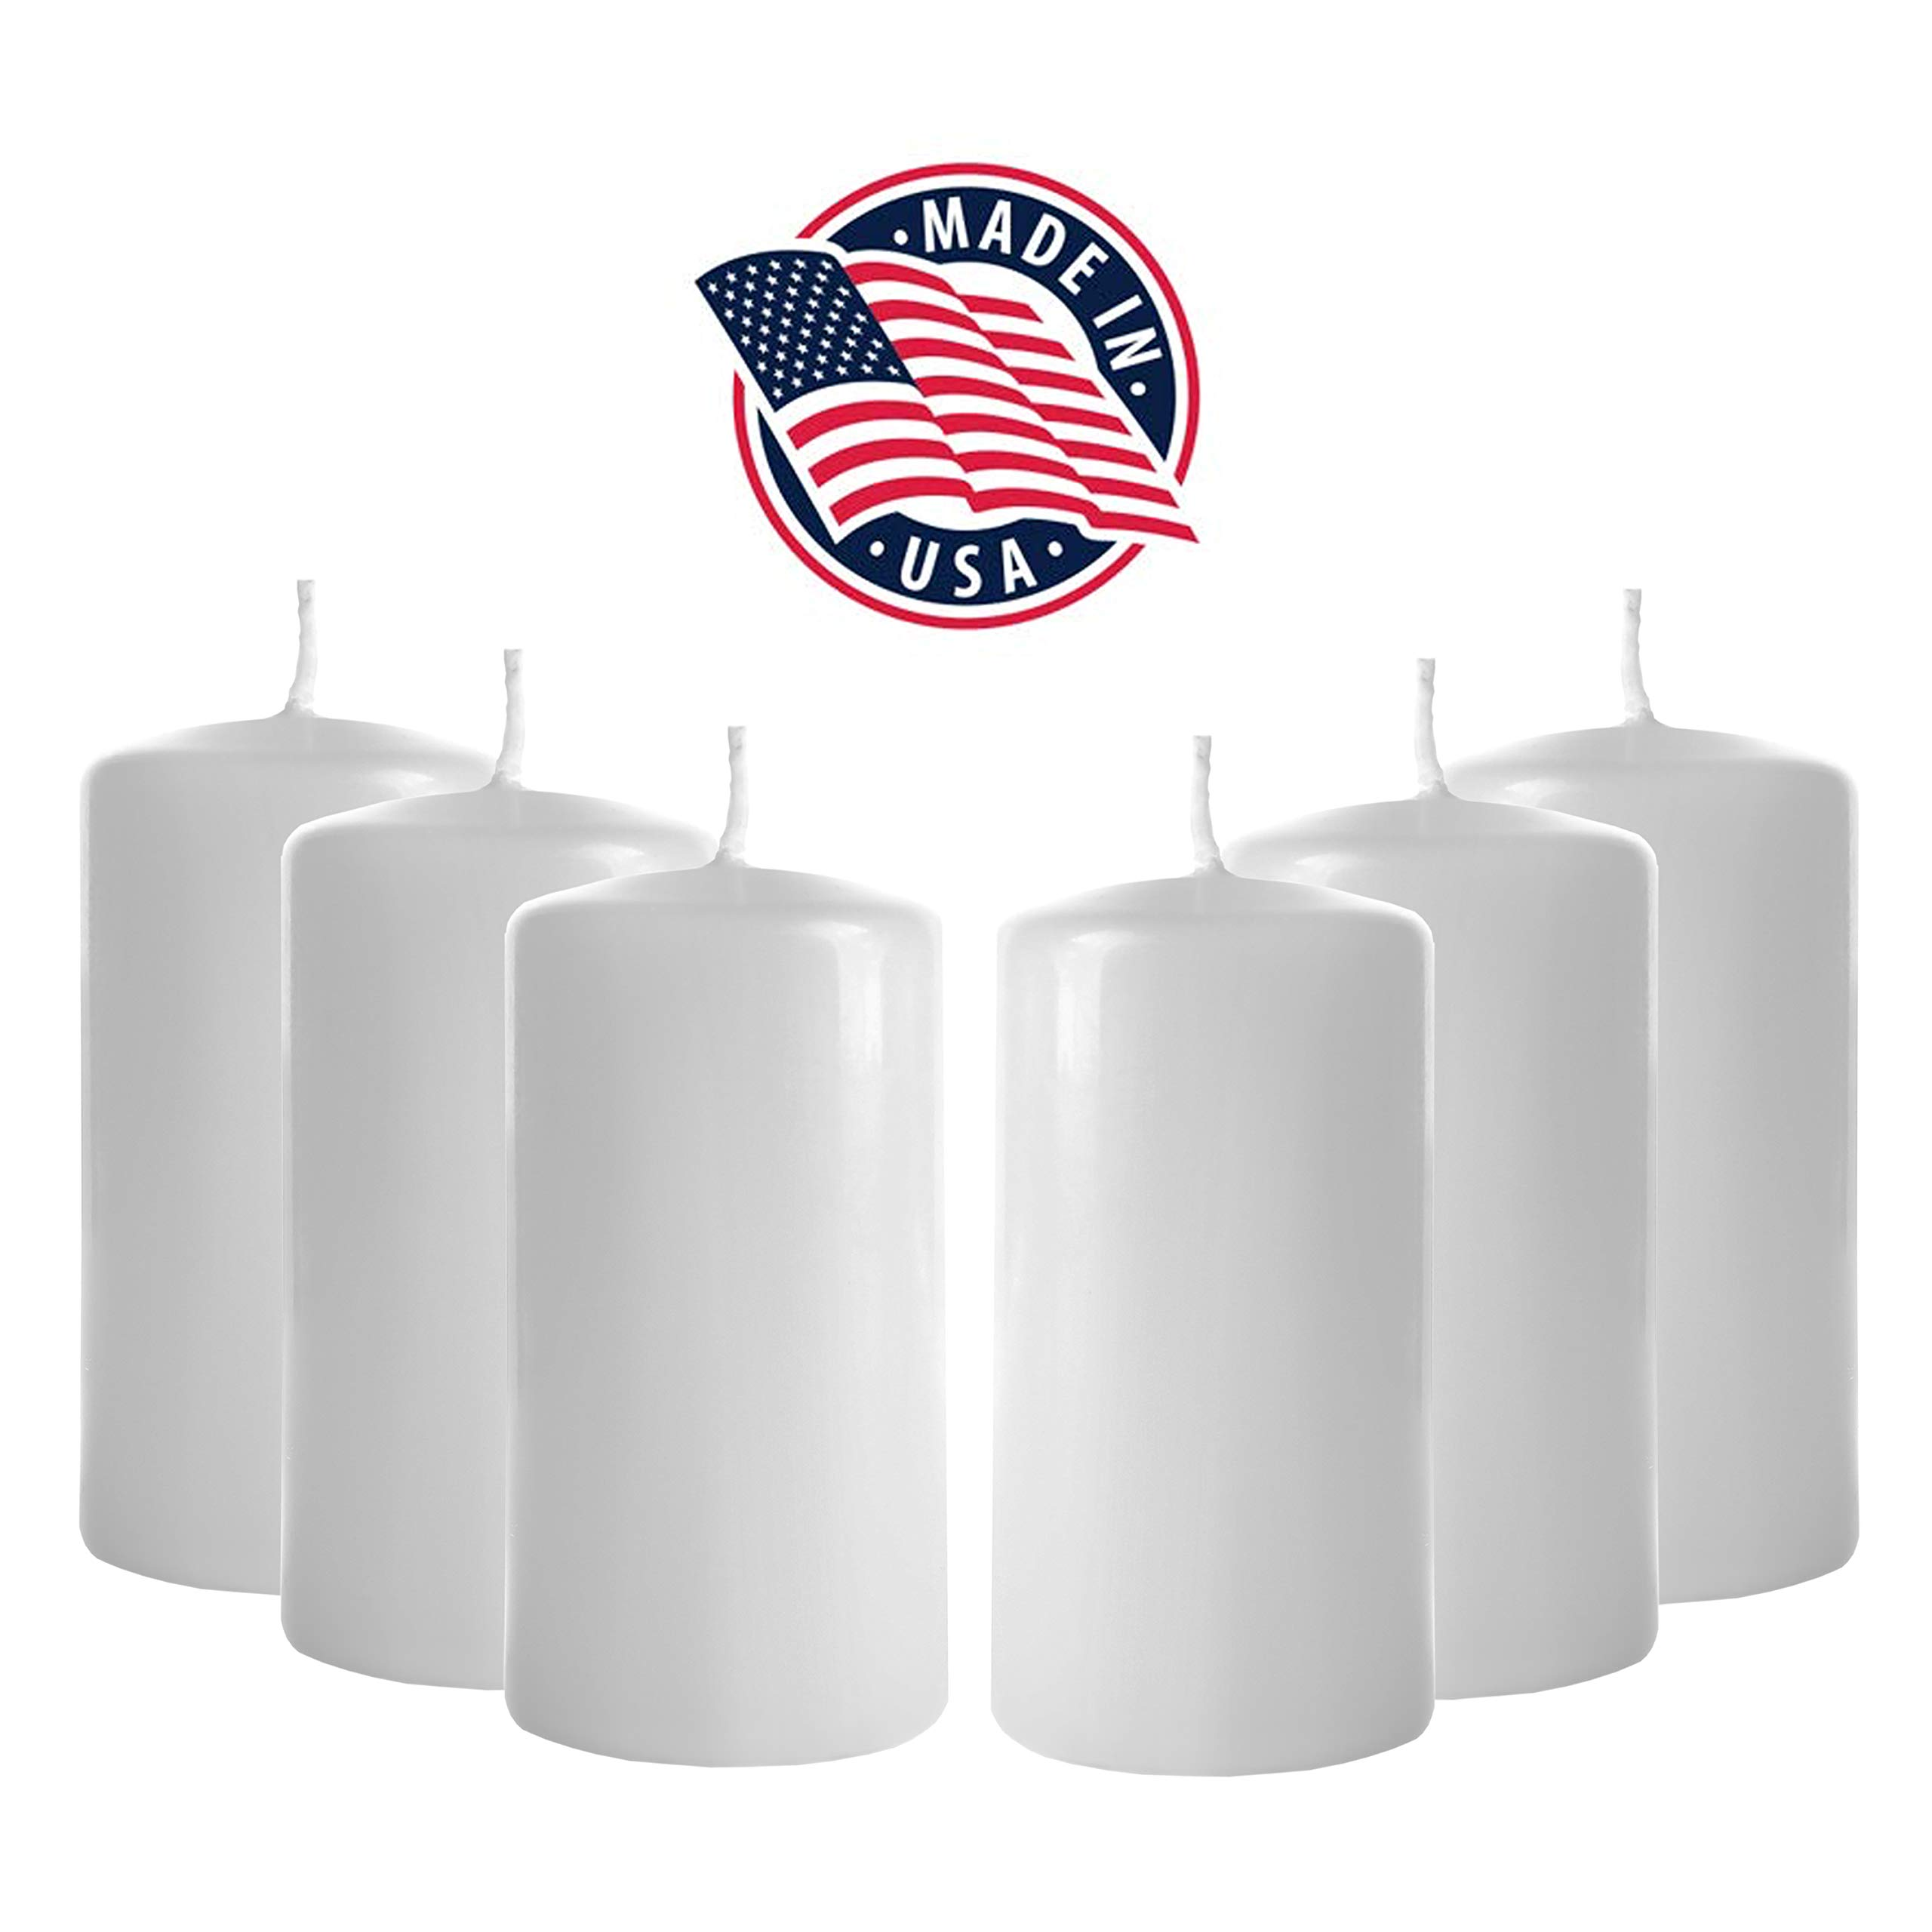 Pillar Candles 3 x 6 - Set of 6 White Candles - Unscented Pillar Candles Bulk - Tall Pillar Candles for Wedding, Party, Restaurant, Spa, Bath, Massage Therapy, Religious Ceremony, Holiday (White)